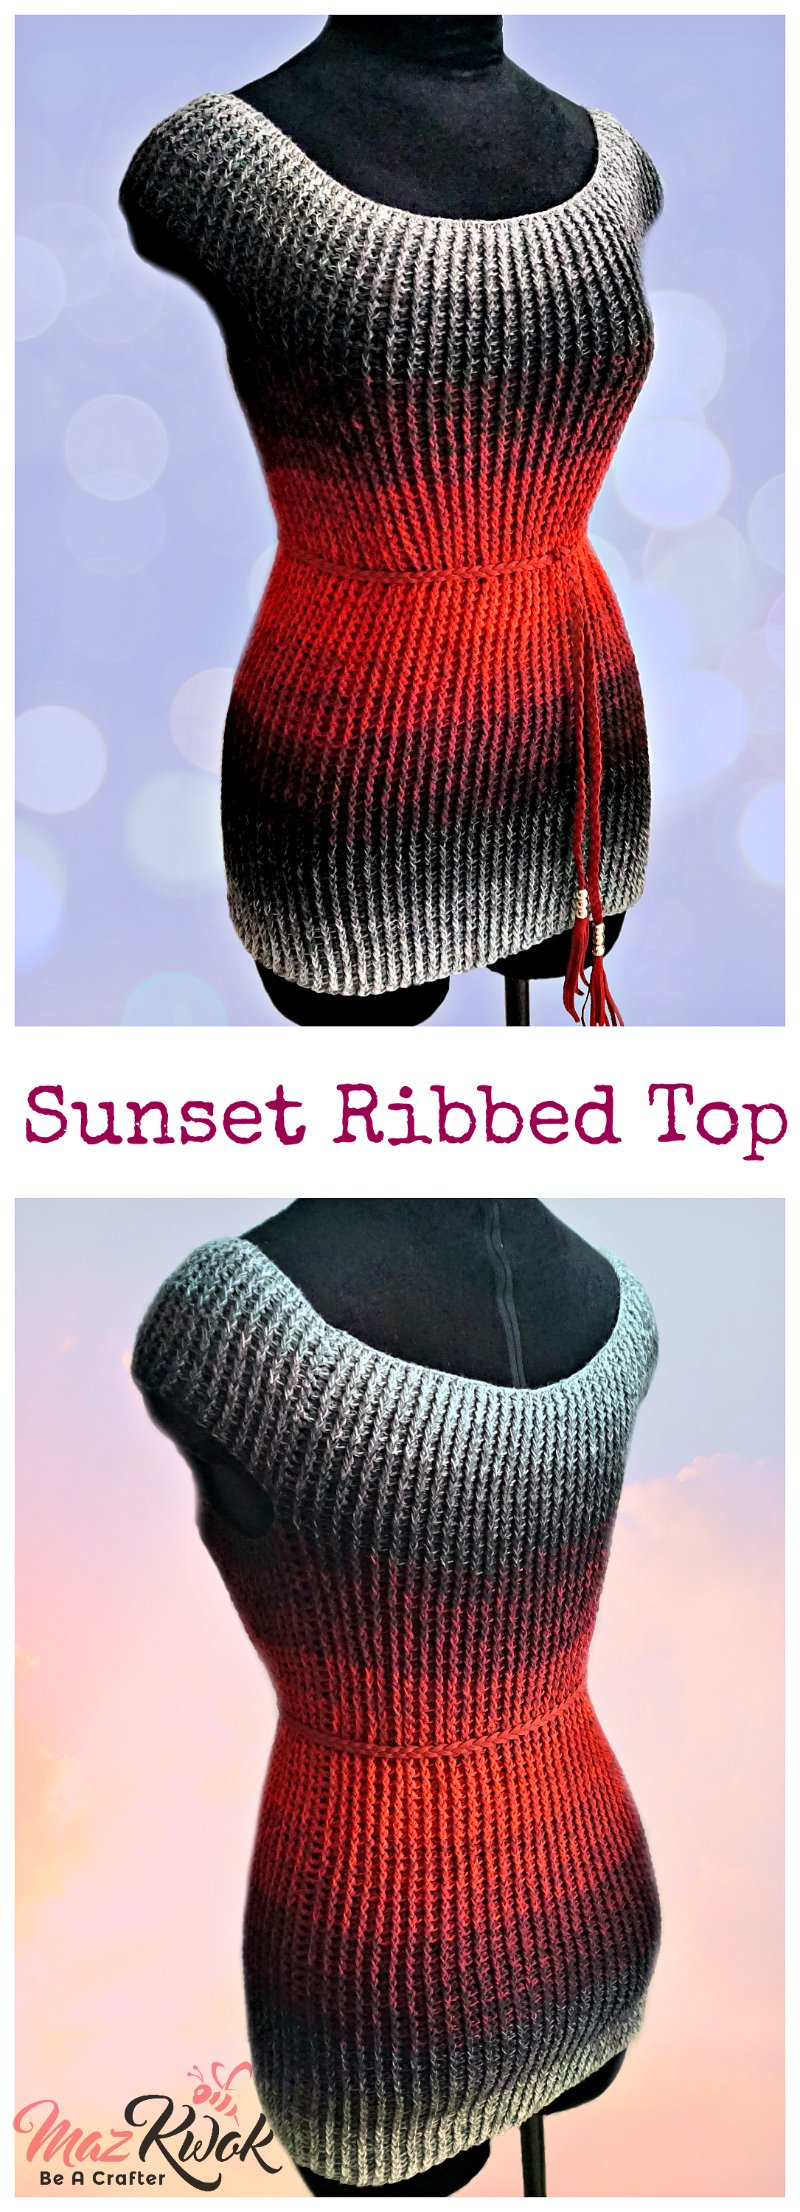 crochet ribbed top pattern